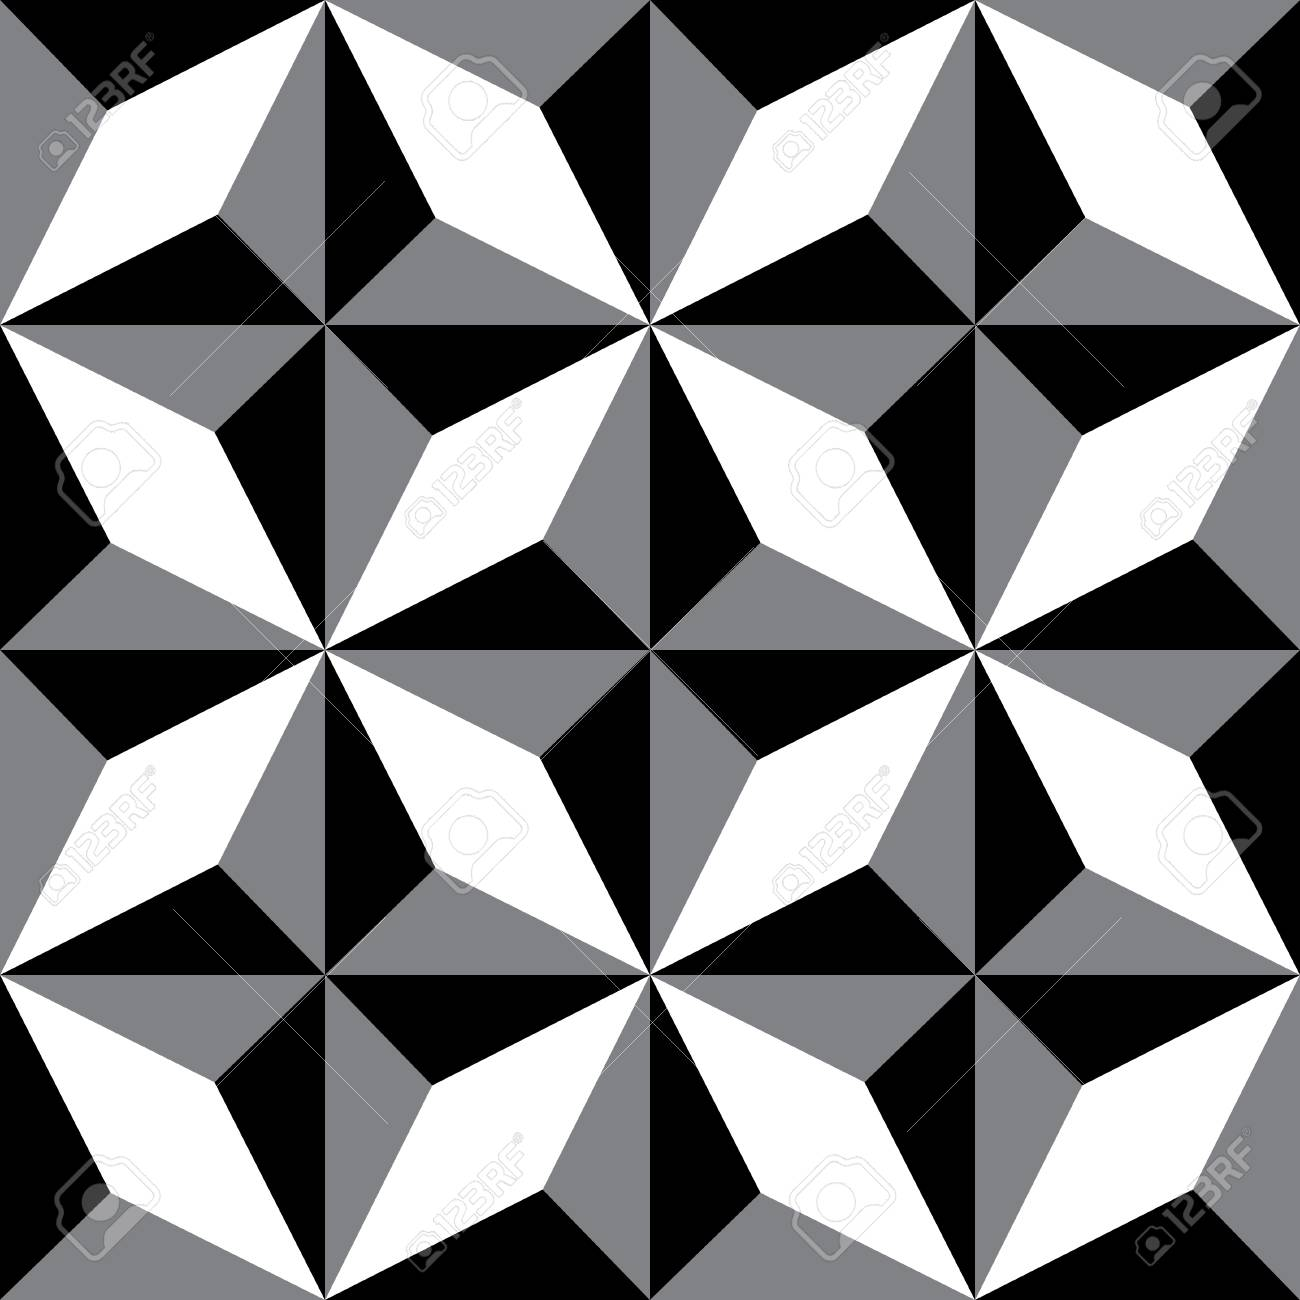 Repeating Geometric Patterns Black White Decorative Texture